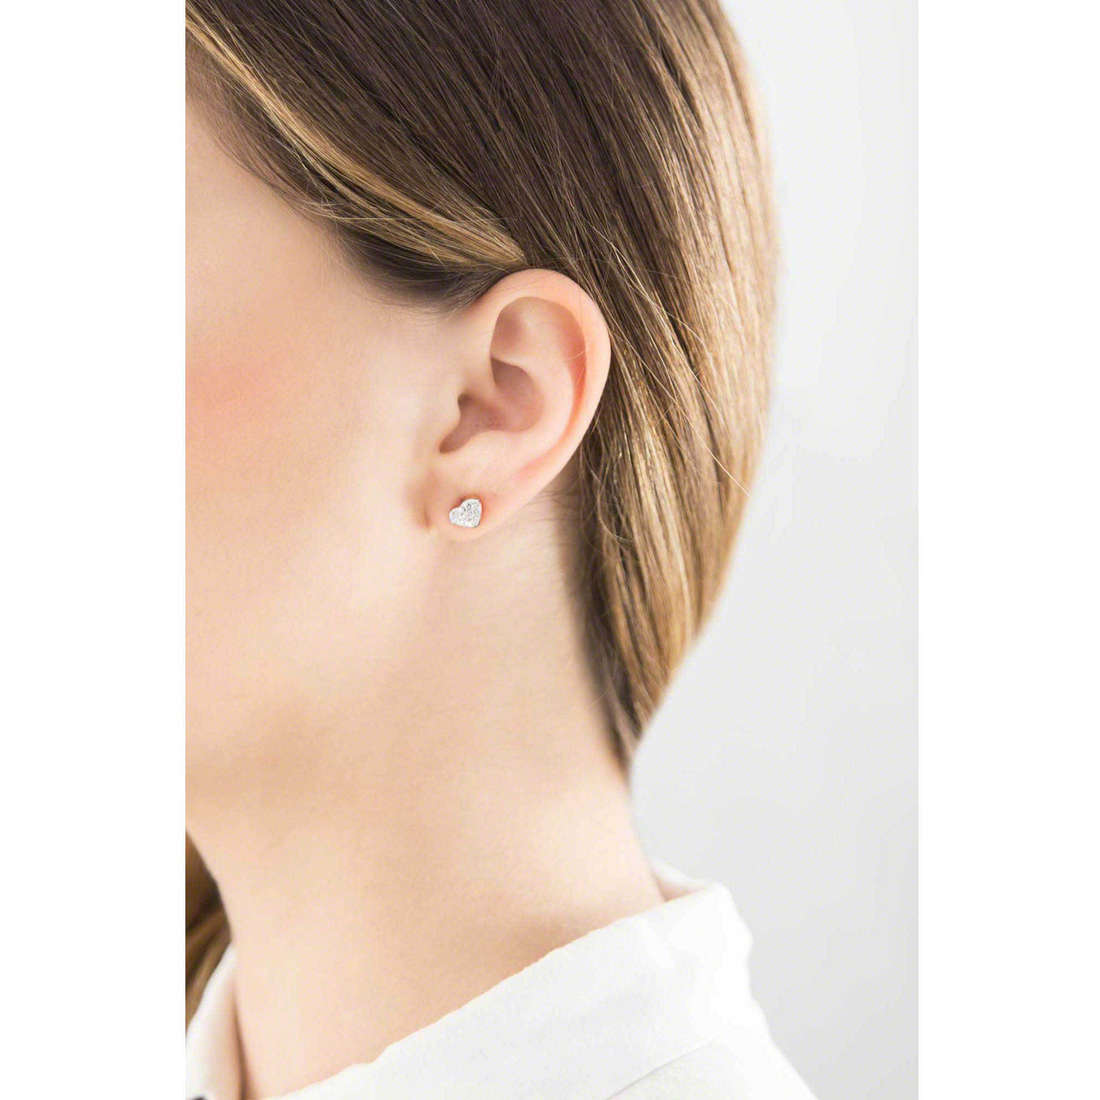 Marlù boucles d'oreille My World femme 18OR004R indosso